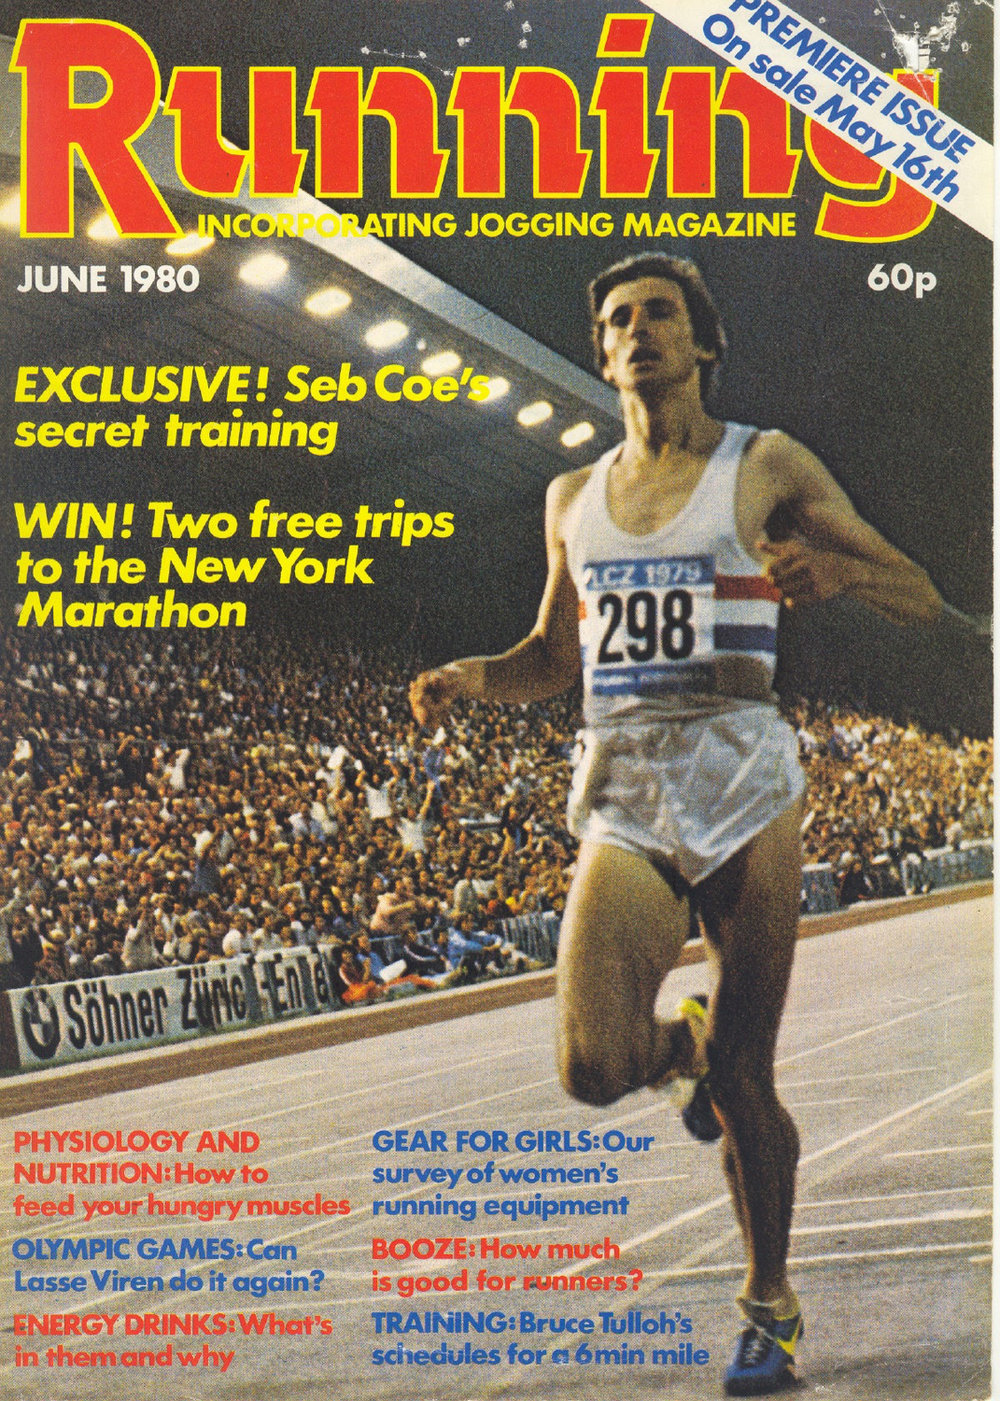 - First issue of Running.